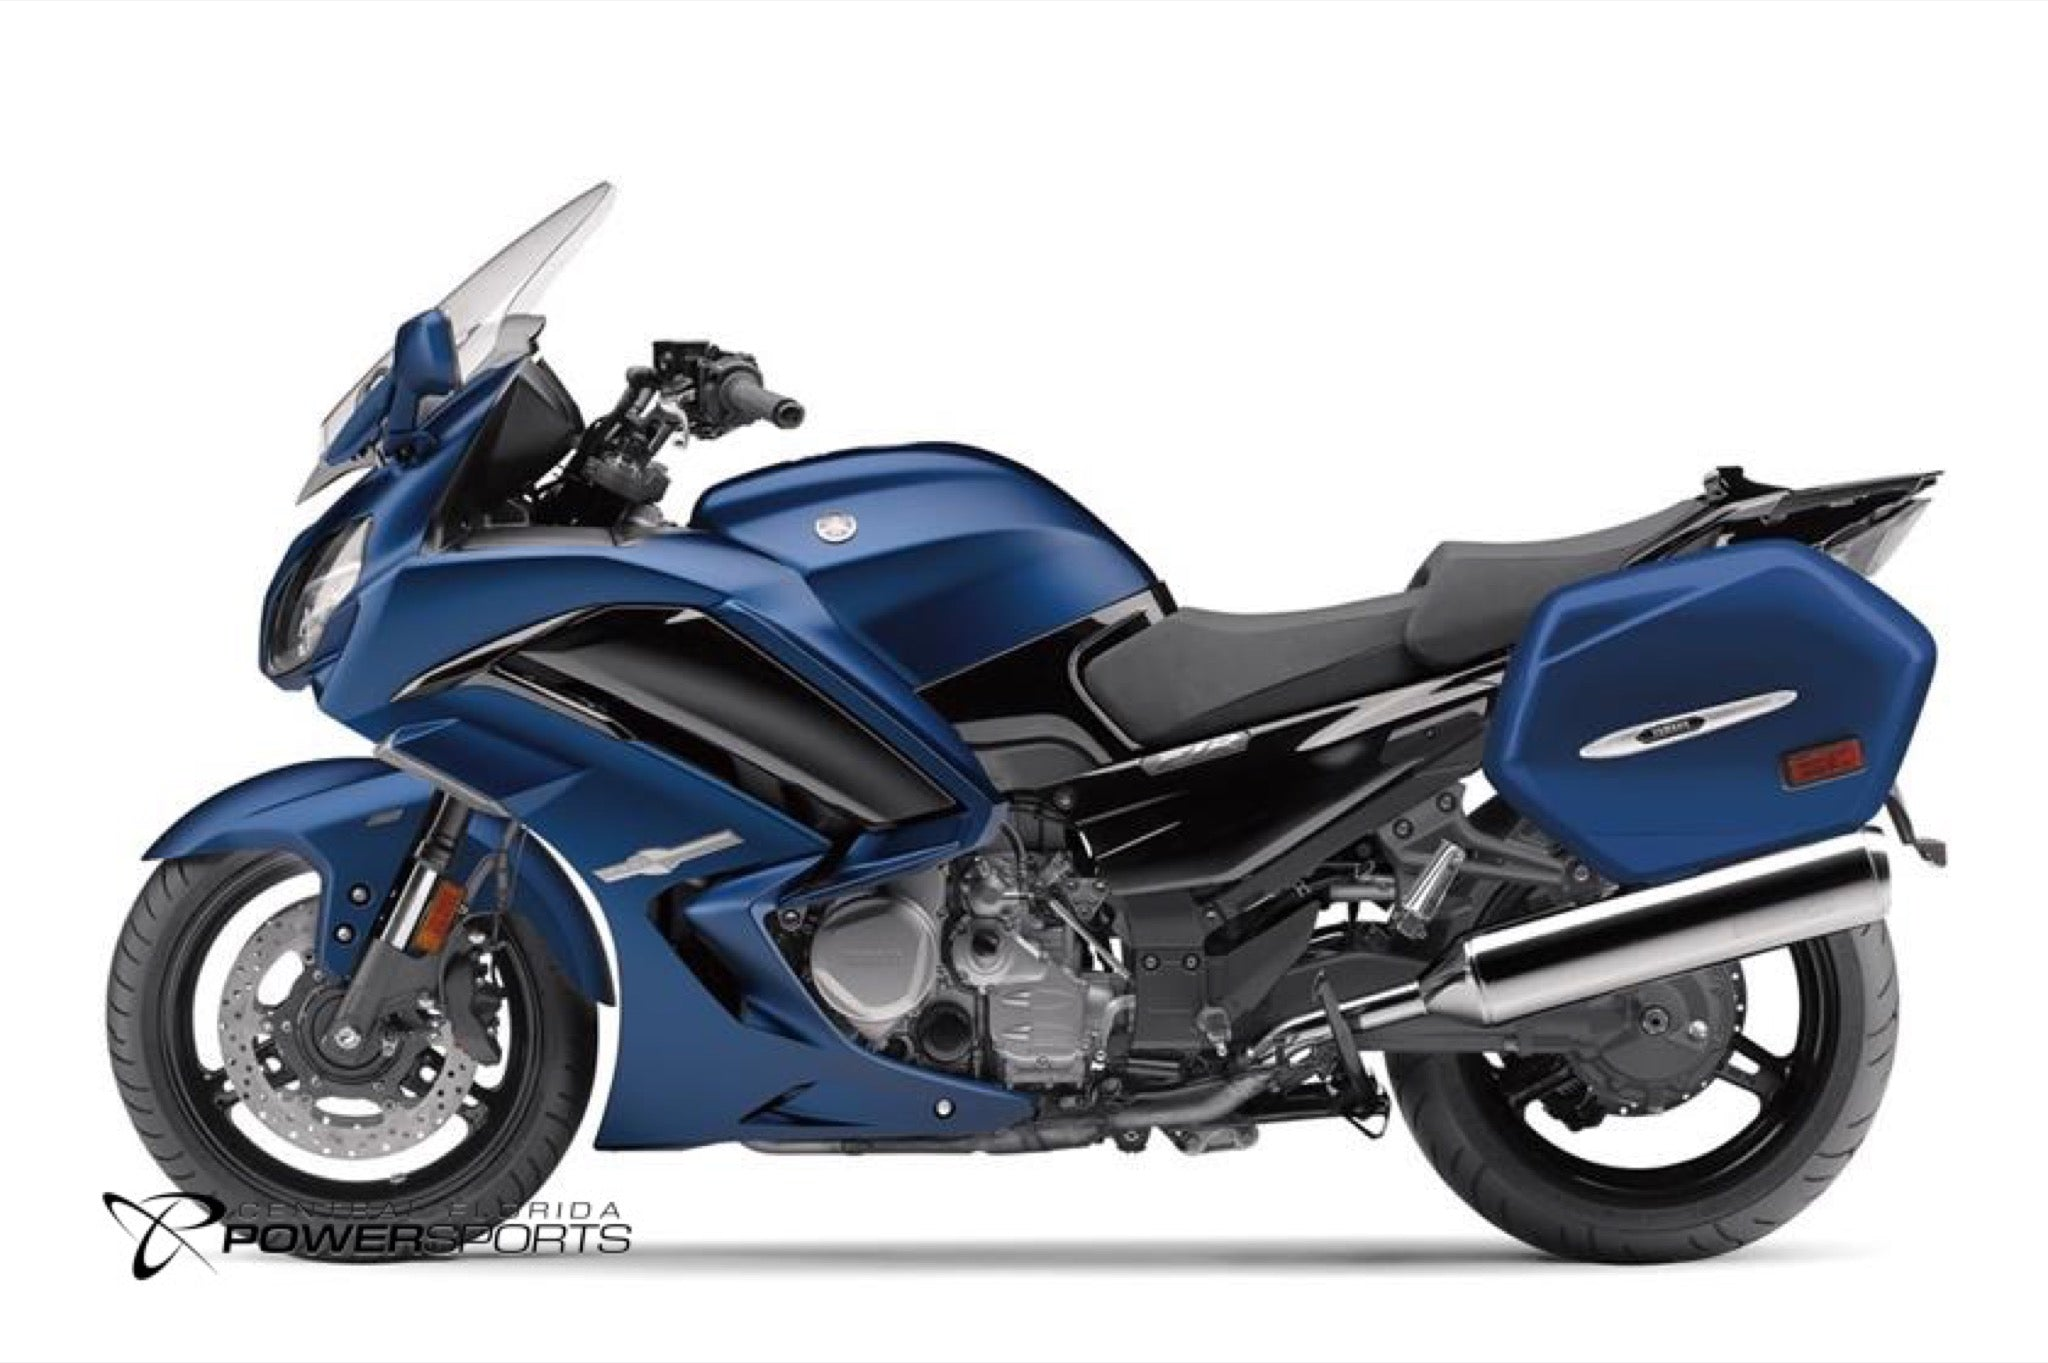 2018 yamaha fjr1300 es motorcycle central florida for Yamaha credit application